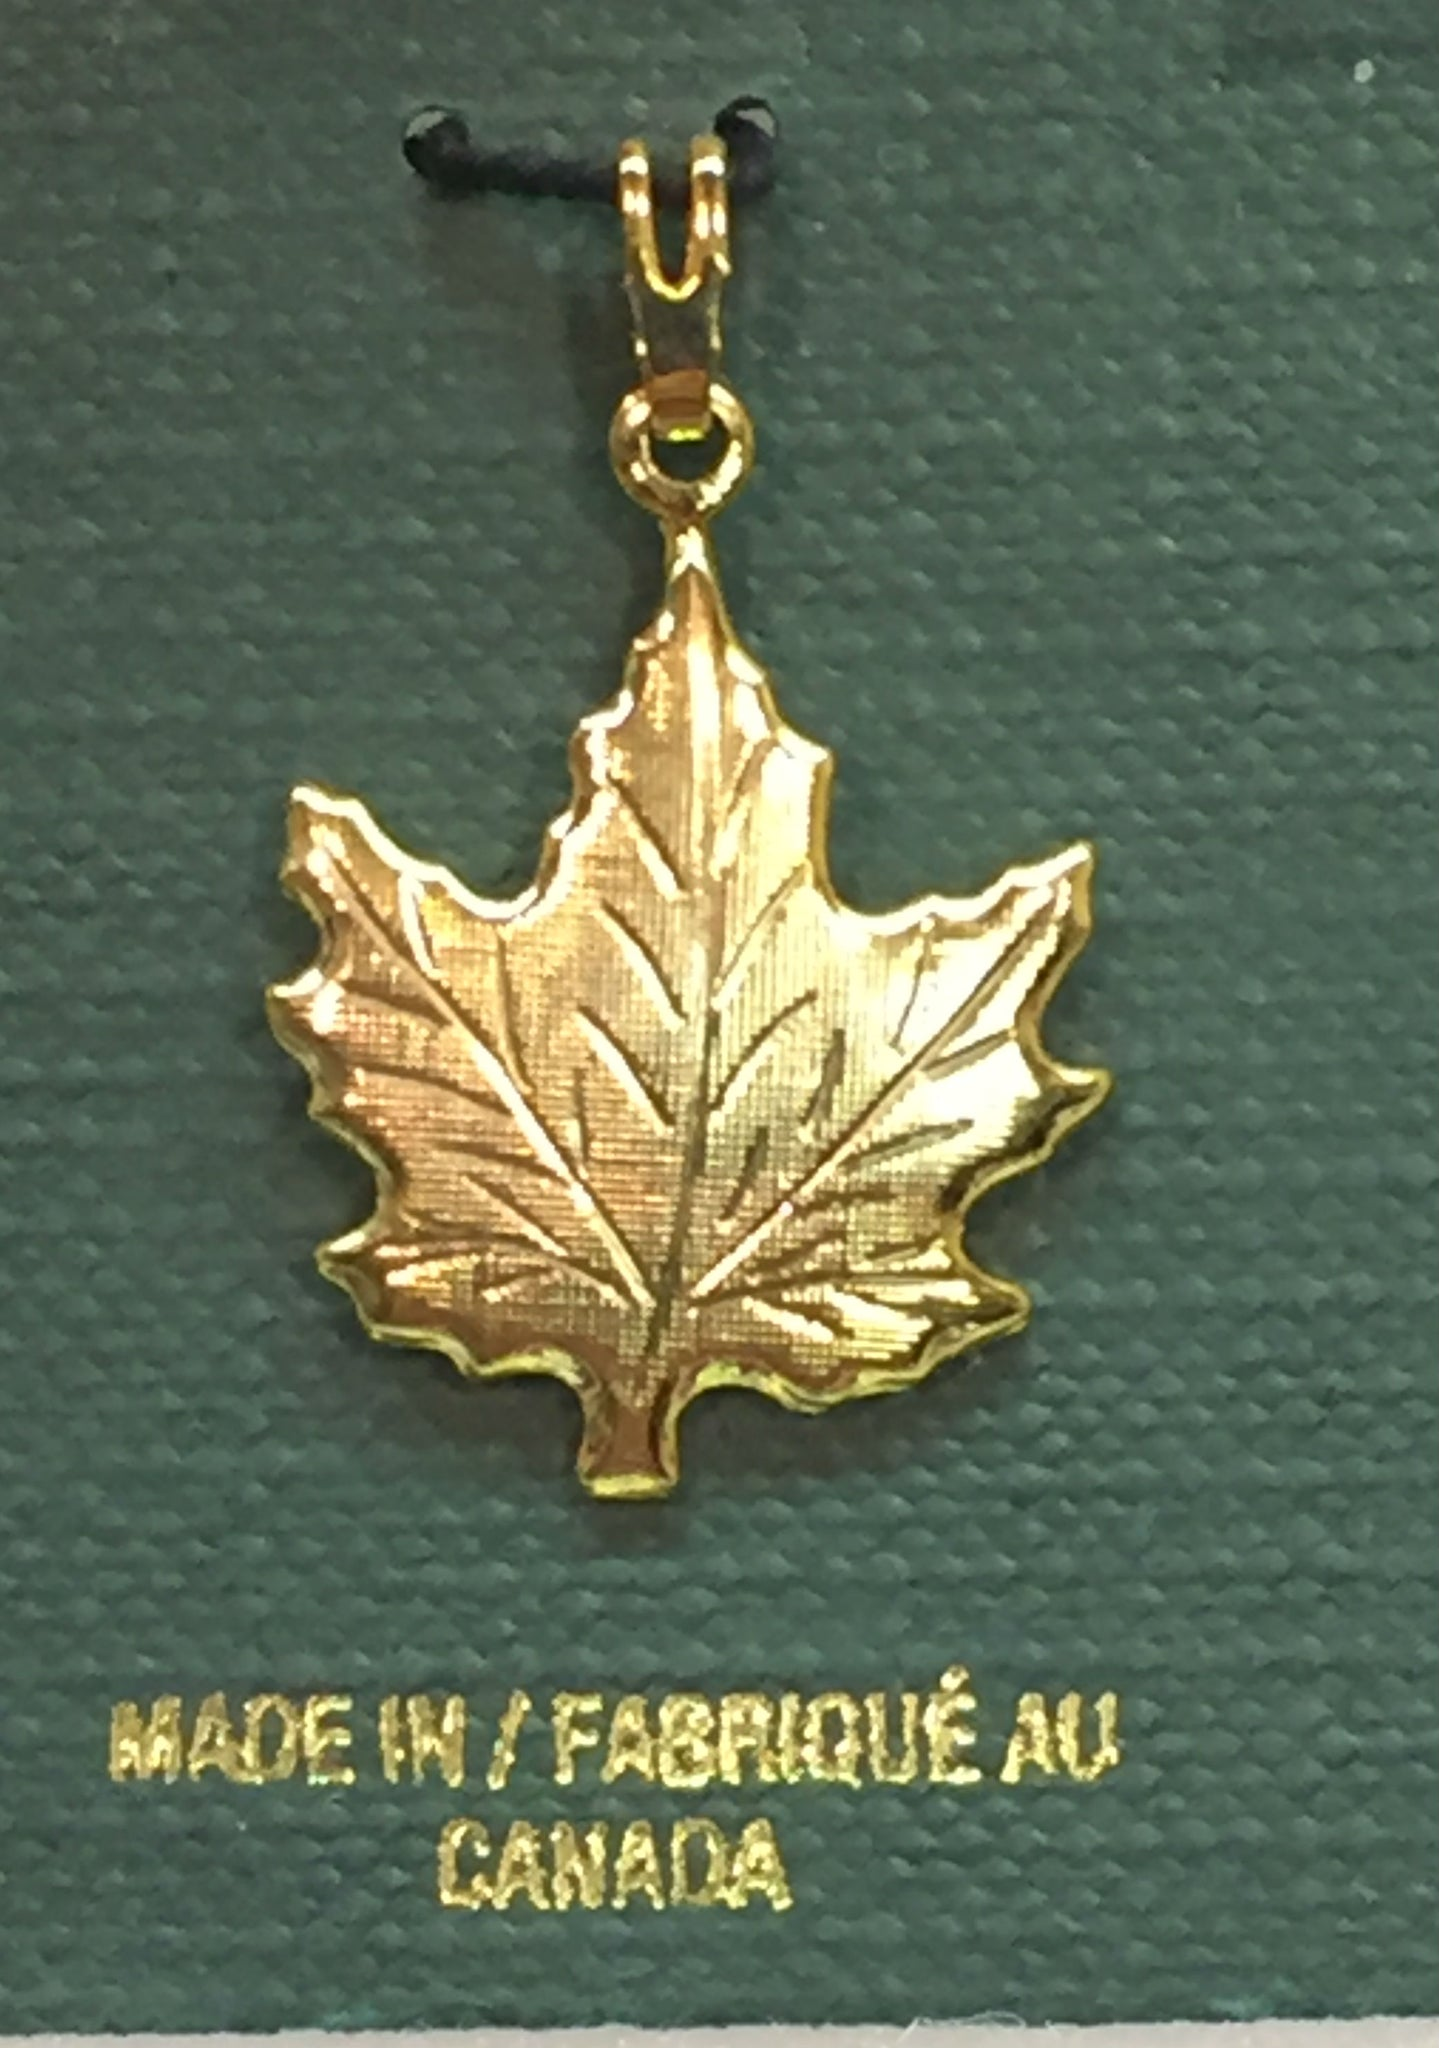 leaf pendant products quickship quick silver metalsmiths maple anything say ship sterling